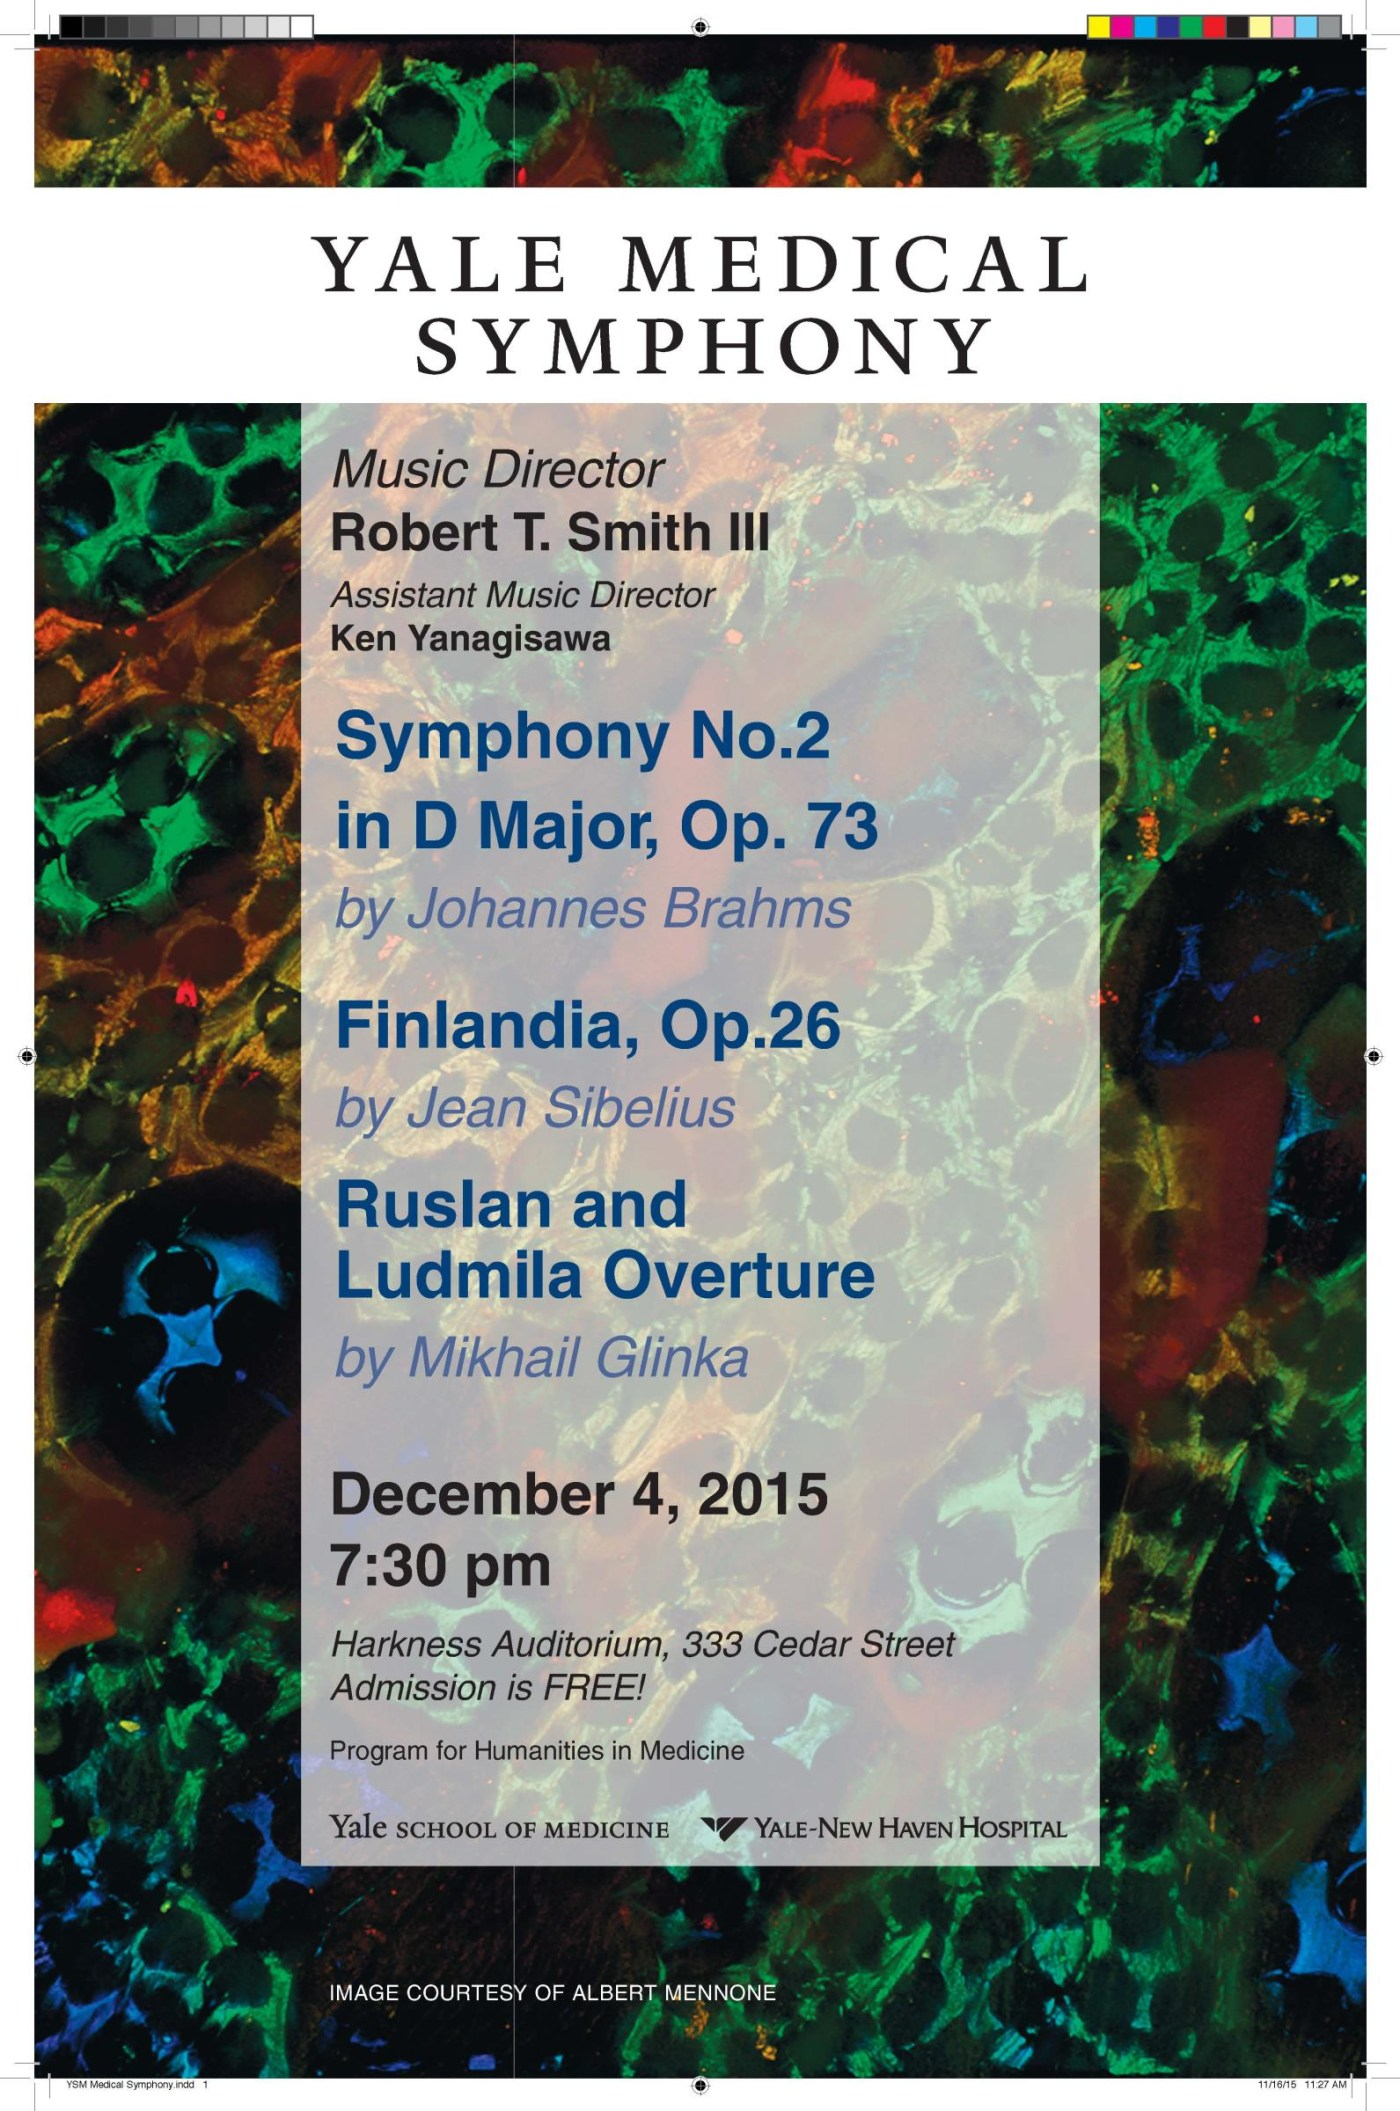 Yale Medical Symphony: Winter 2015